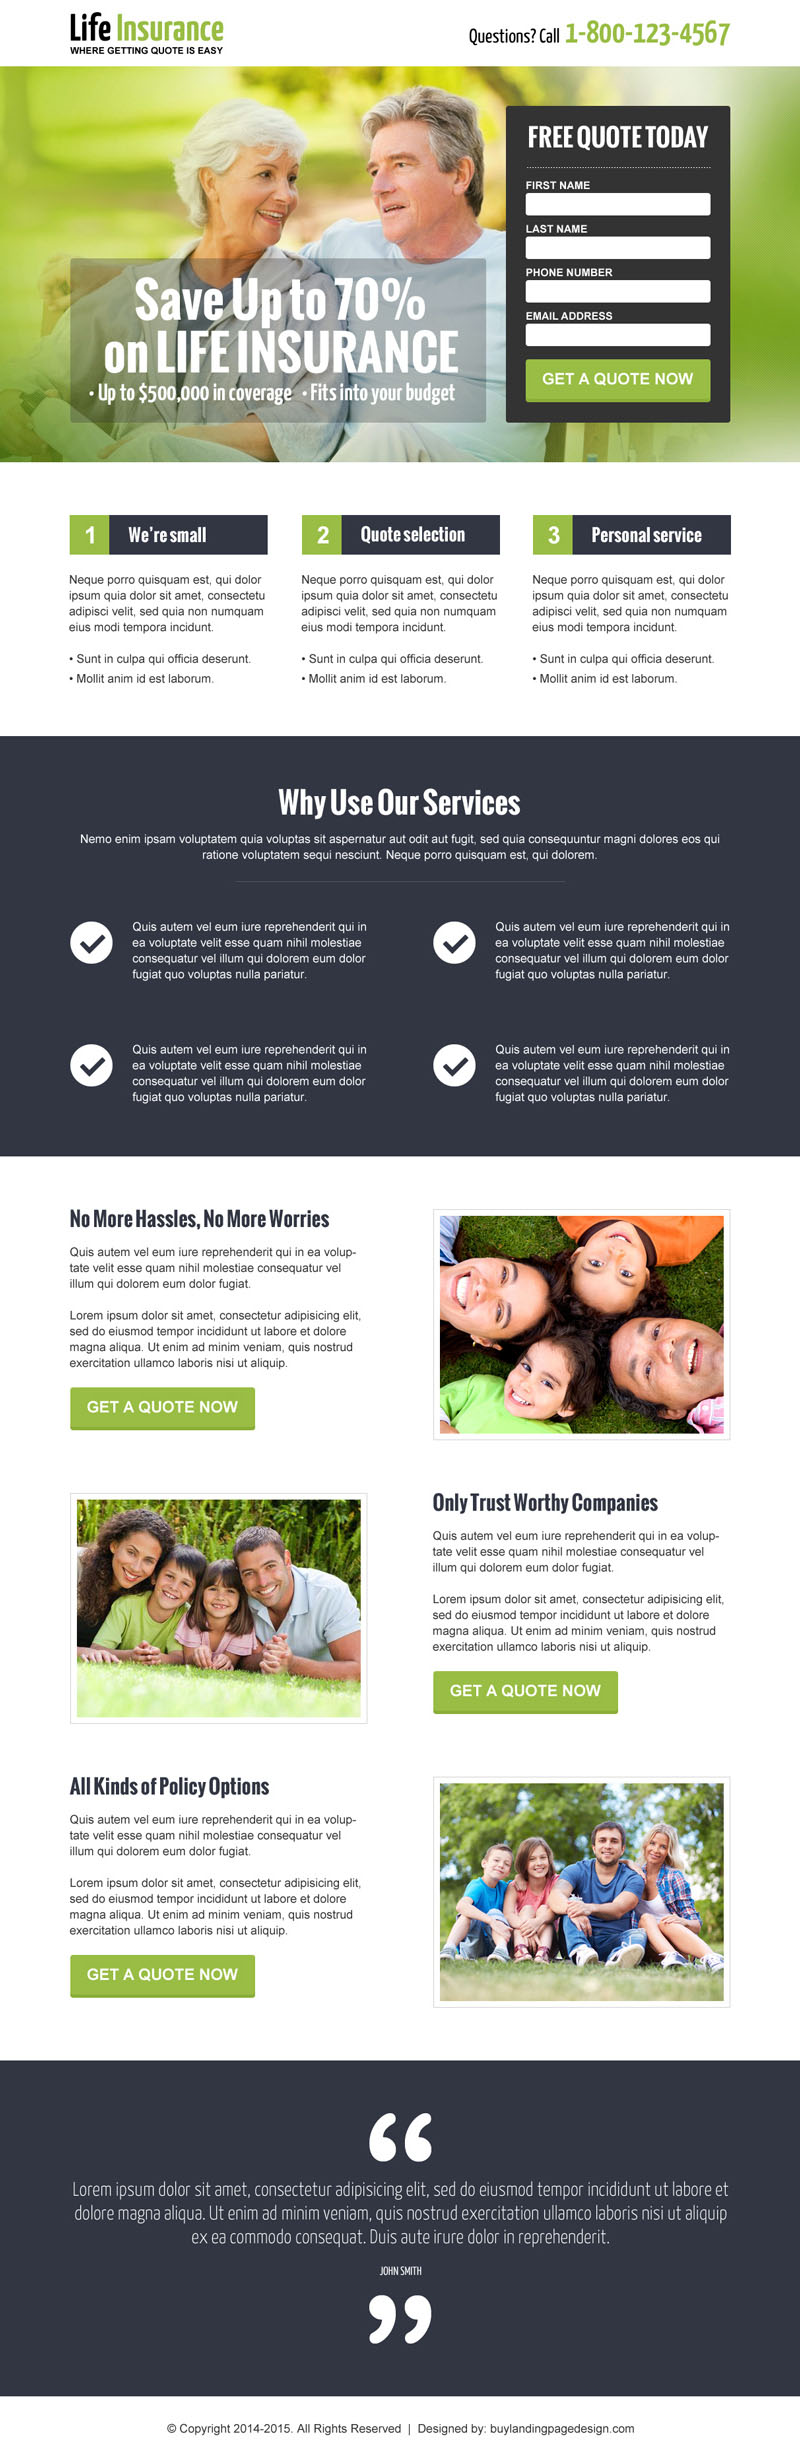 save-money-on-life-insurance-quote-lead-capture-landing-page-design-template-012